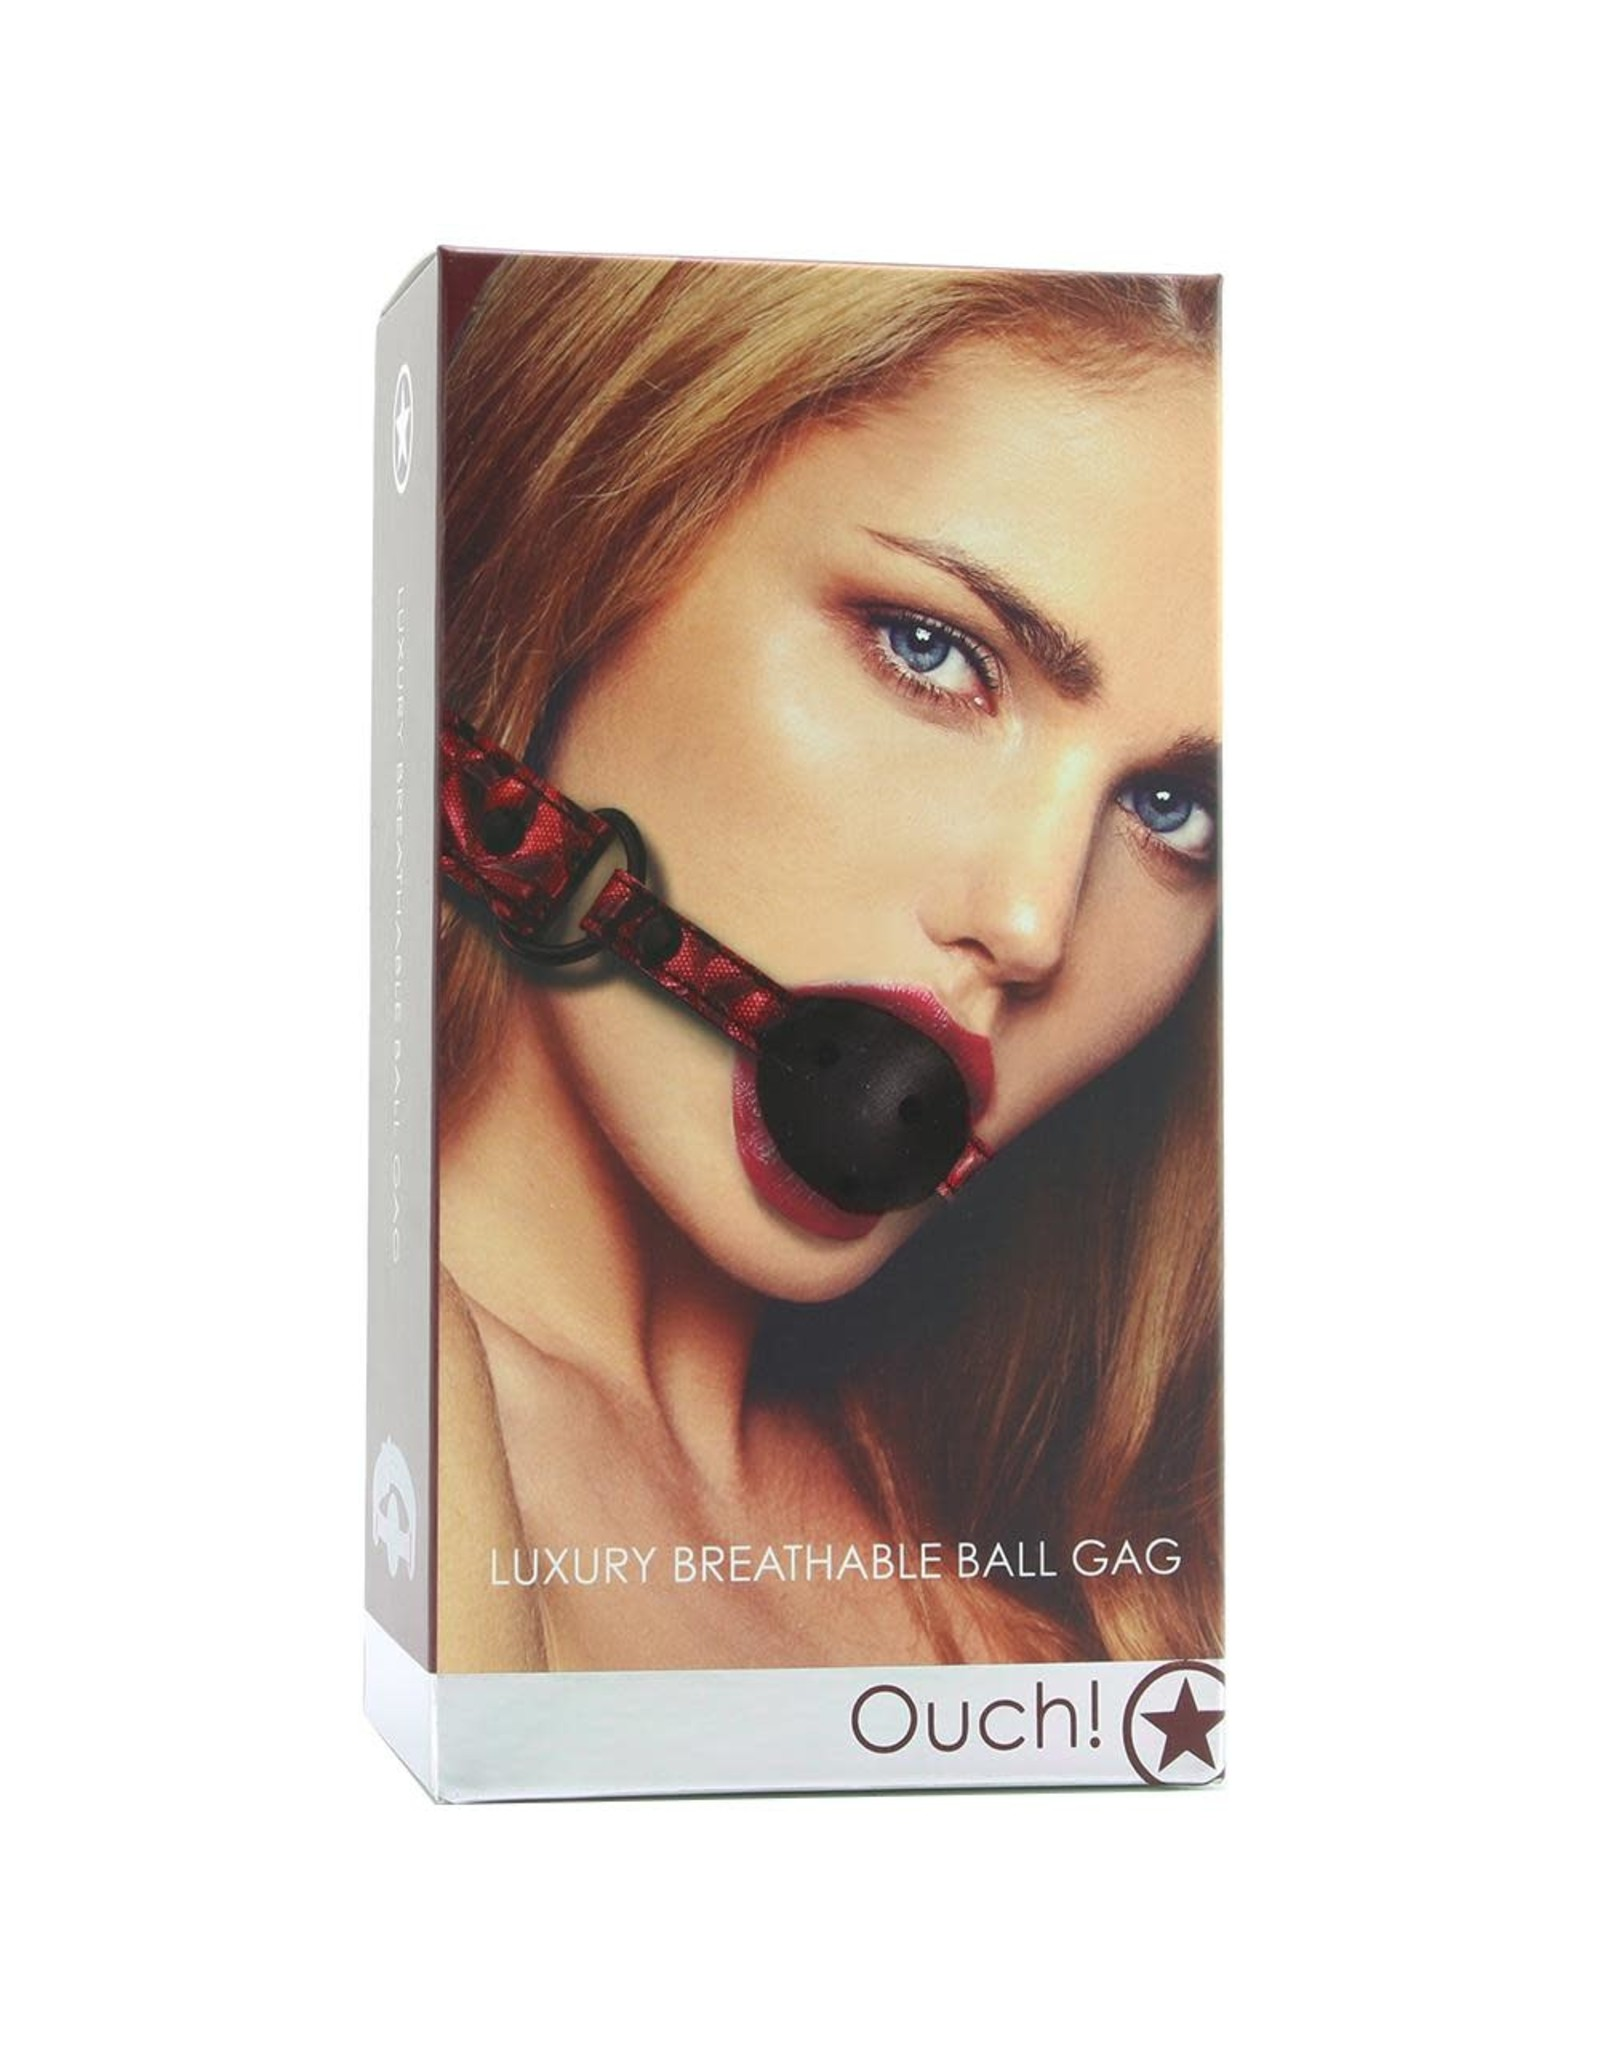 OUCH OUCH! - LUXURY BREATHABLE BALL GAG